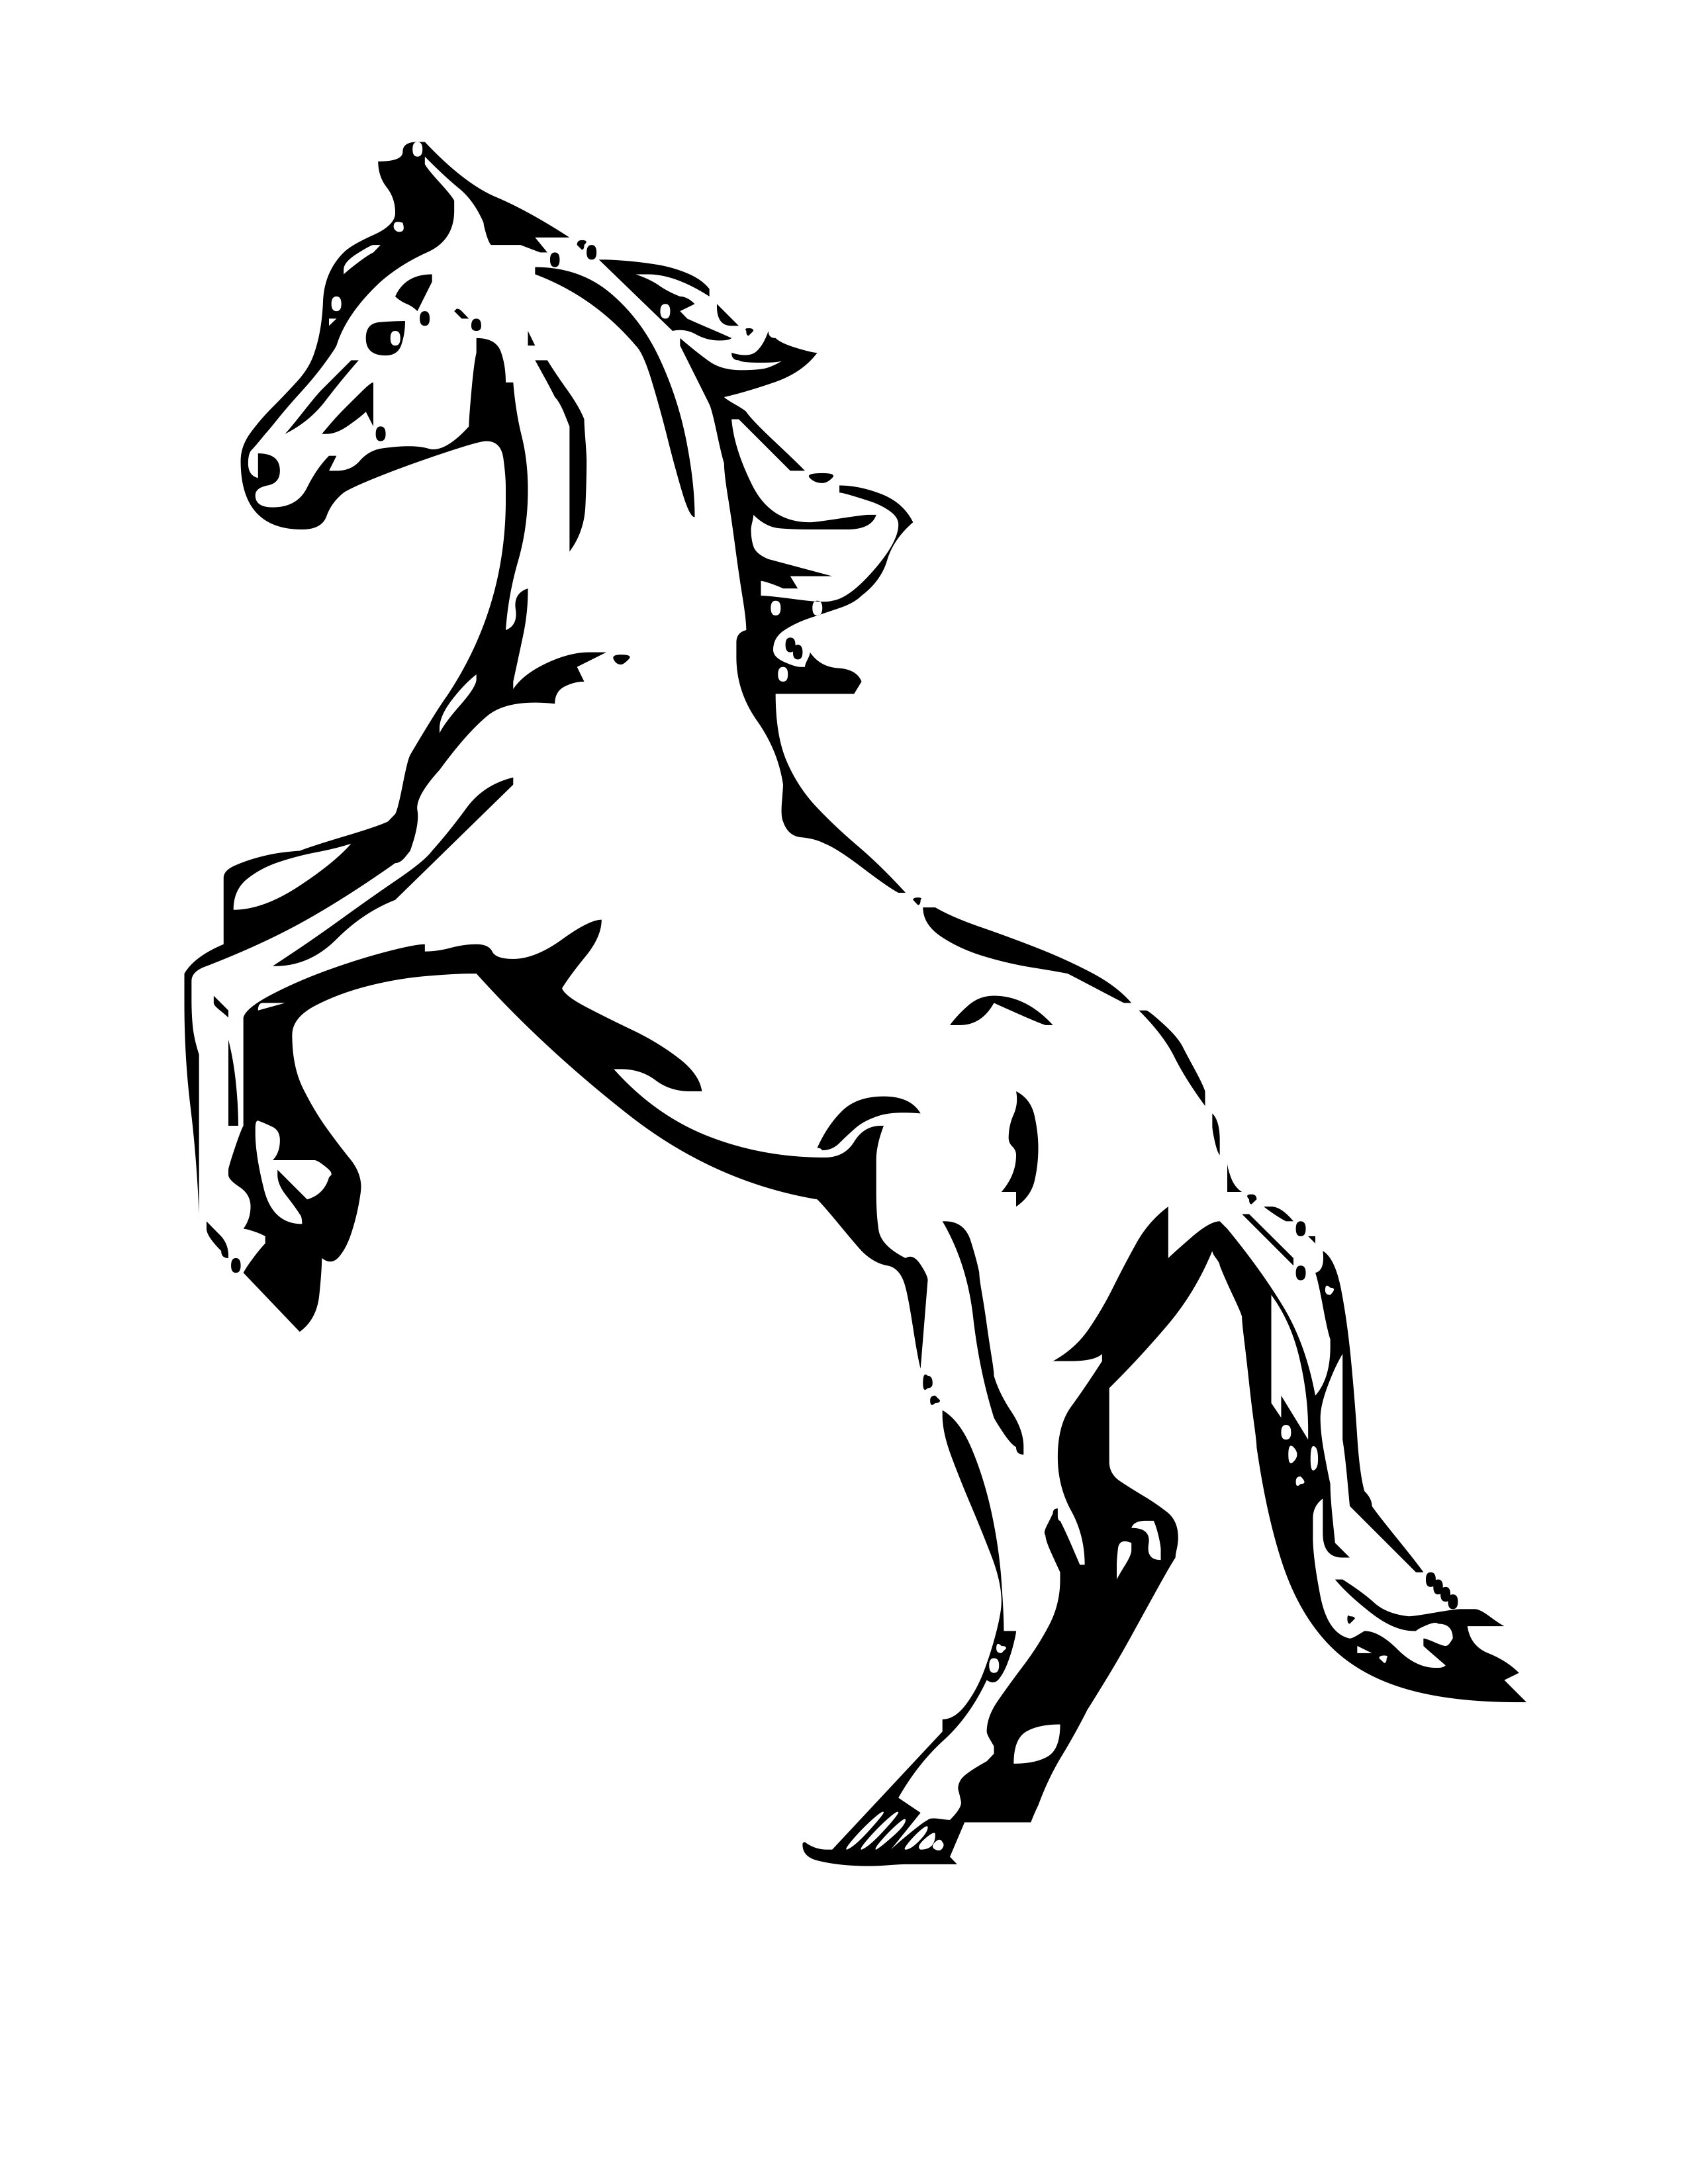 coloring picture of horse horse coloring pages for kids coloring pages for kids coloring picture horse of